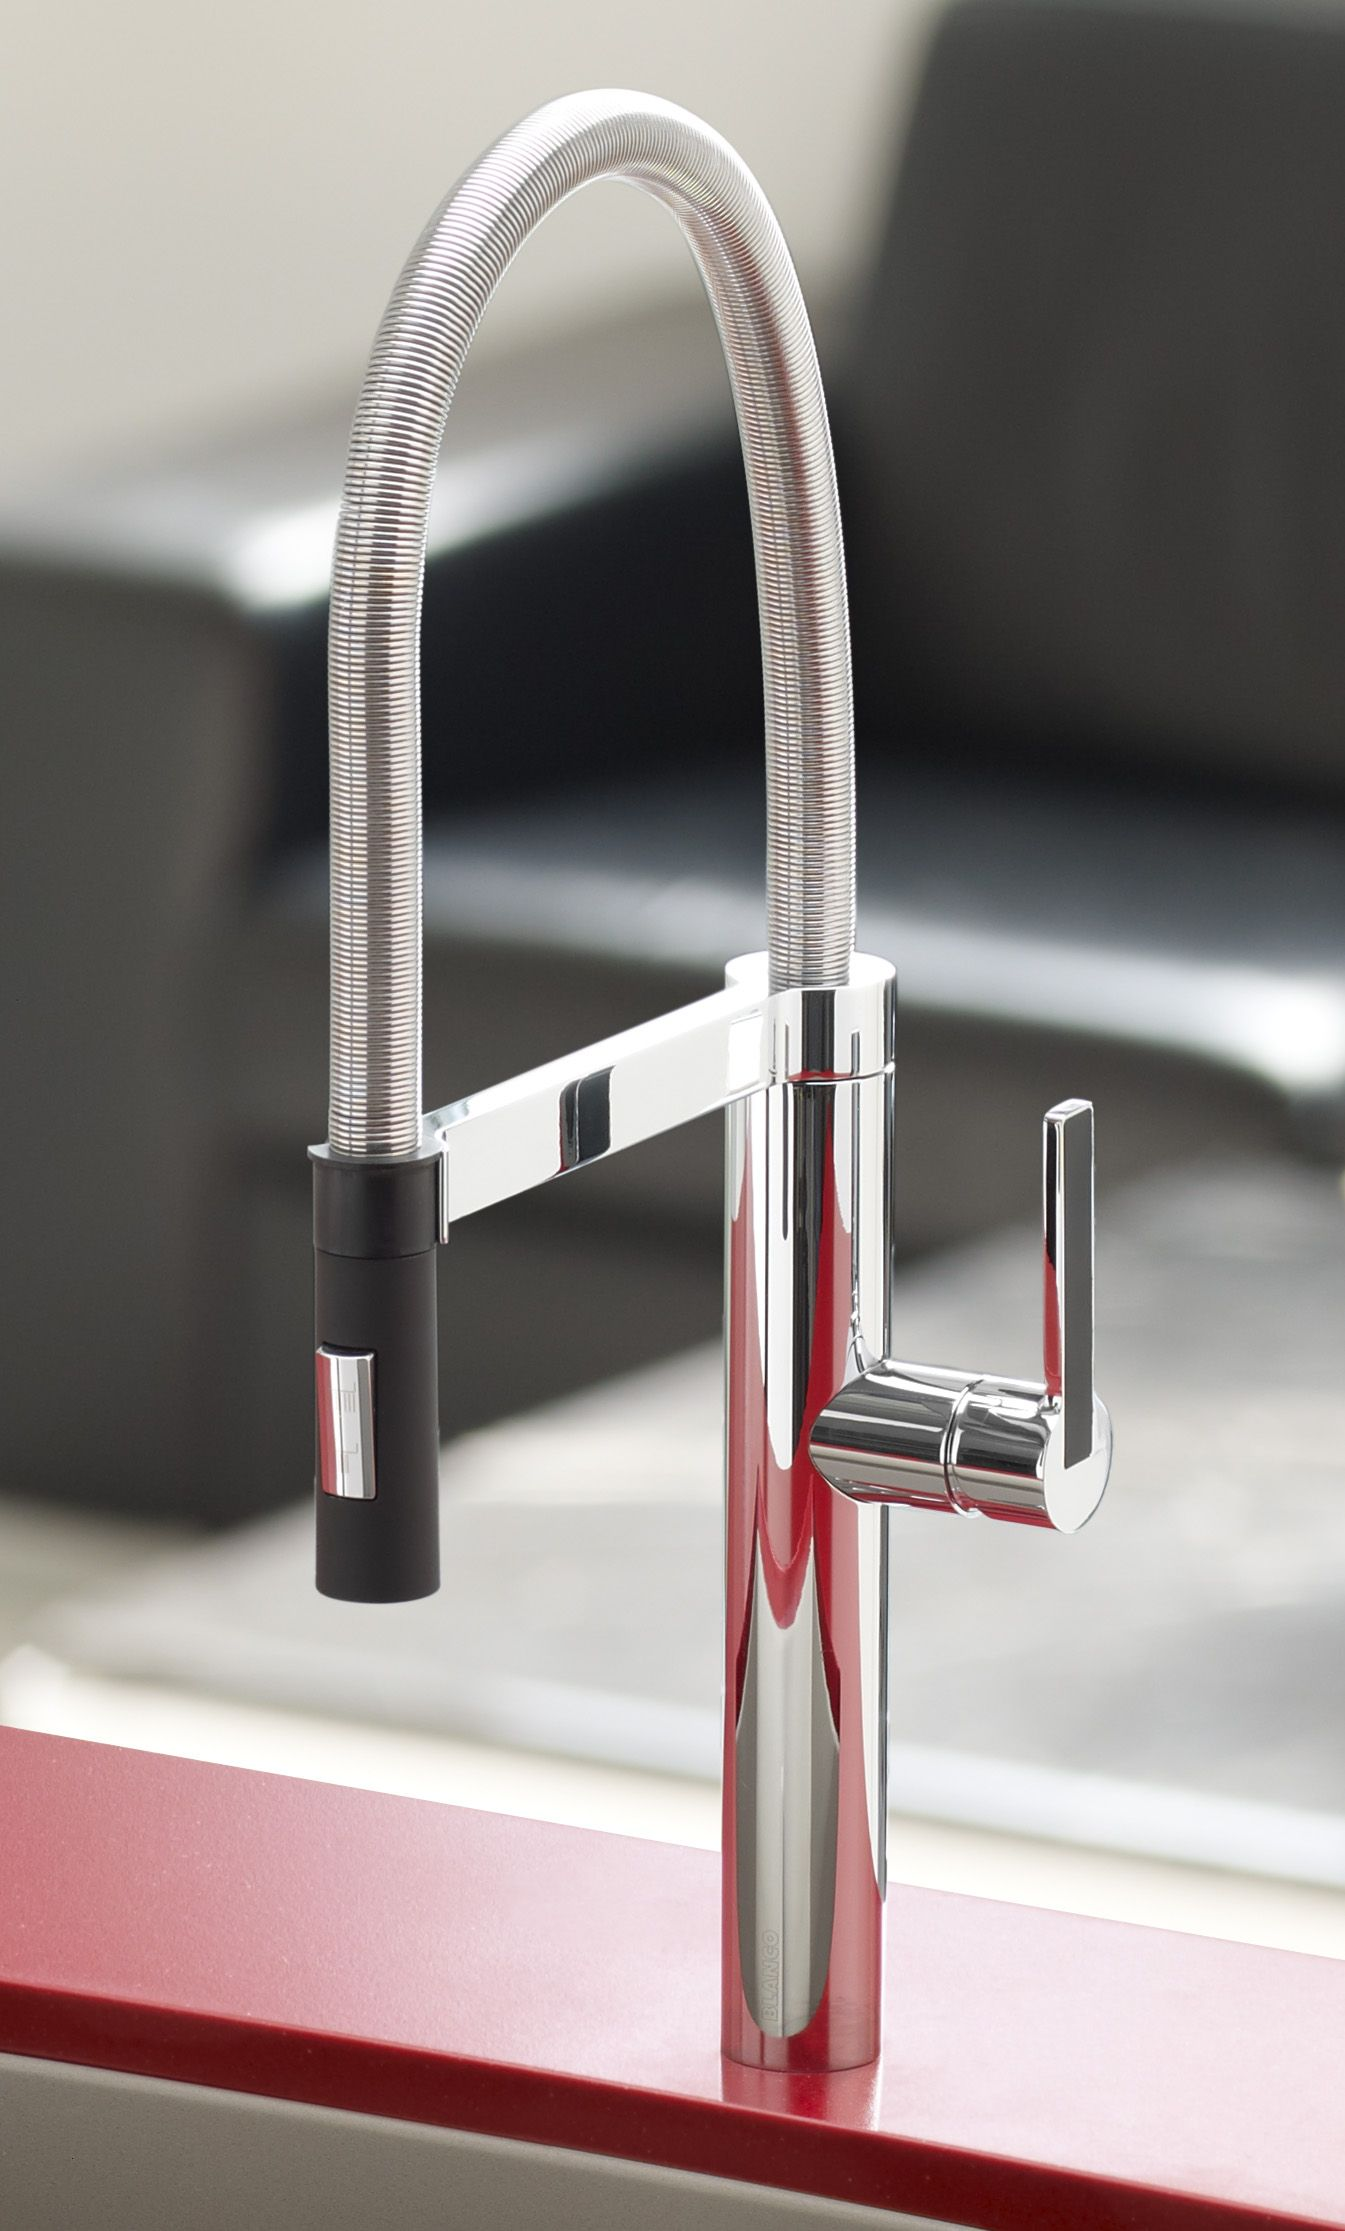 Küchendesign marmor blanco culina faucet winner of the red dot and if international